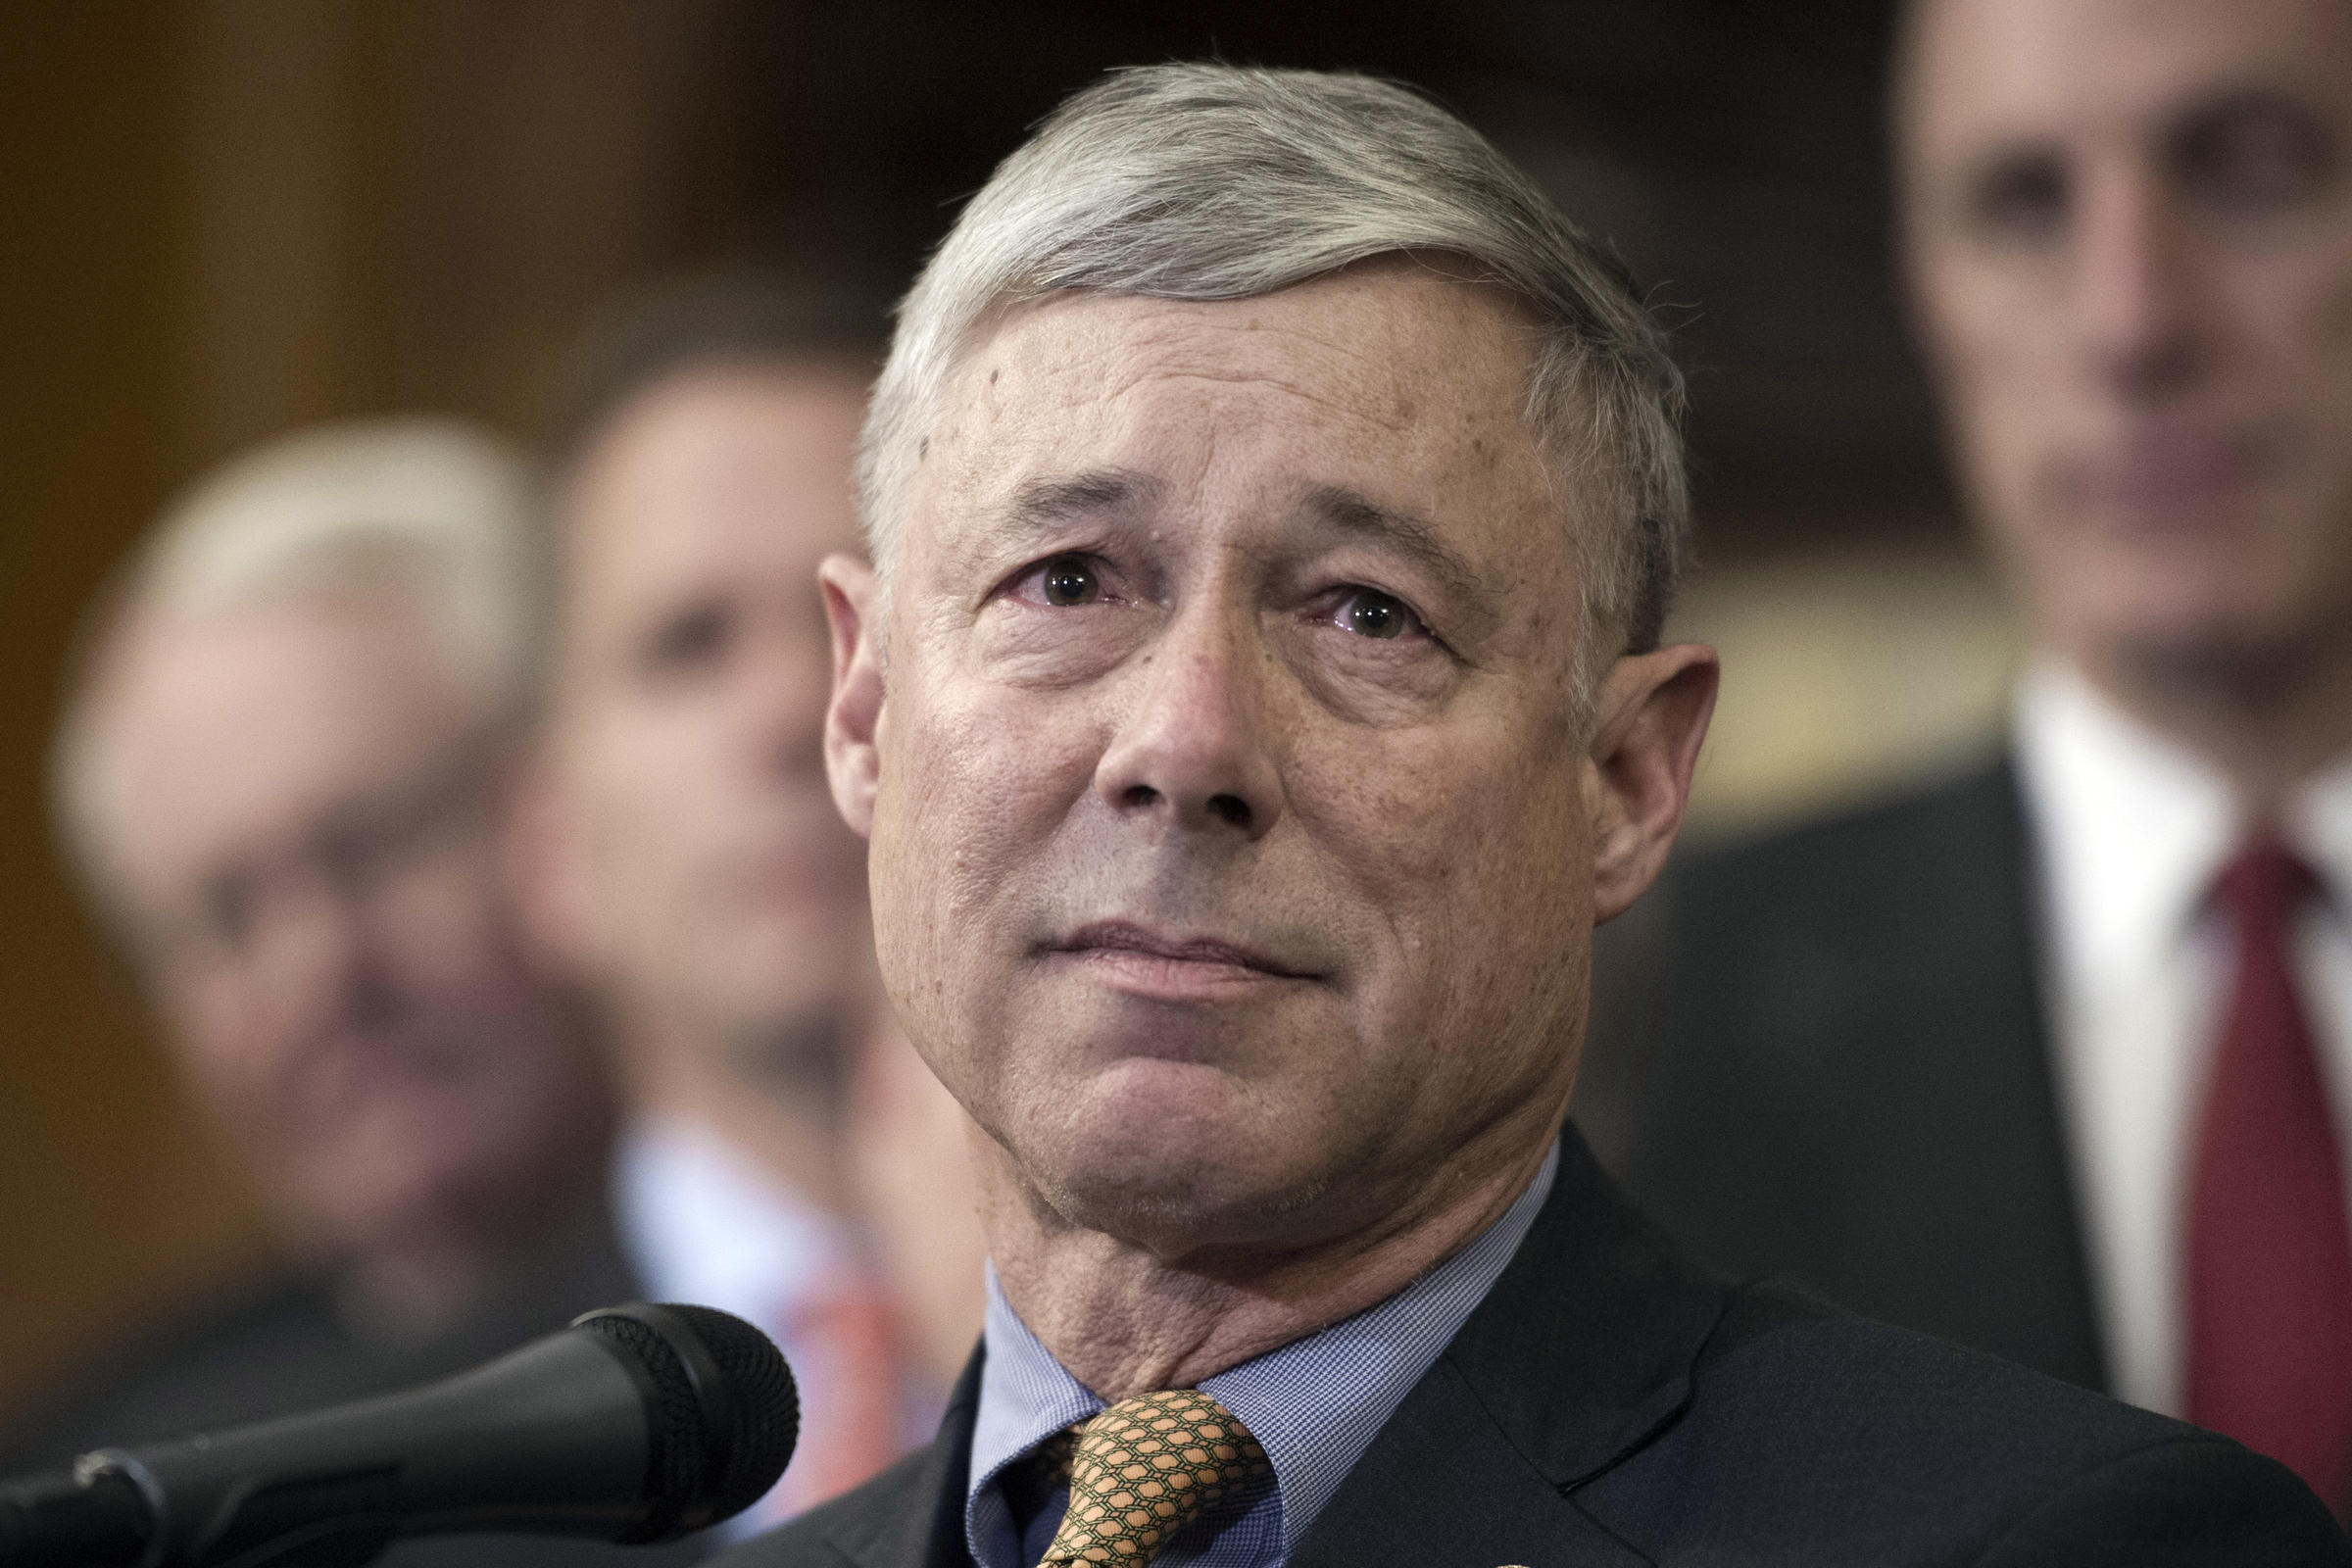 Rep. Fred Upton announces re-election bid for US House